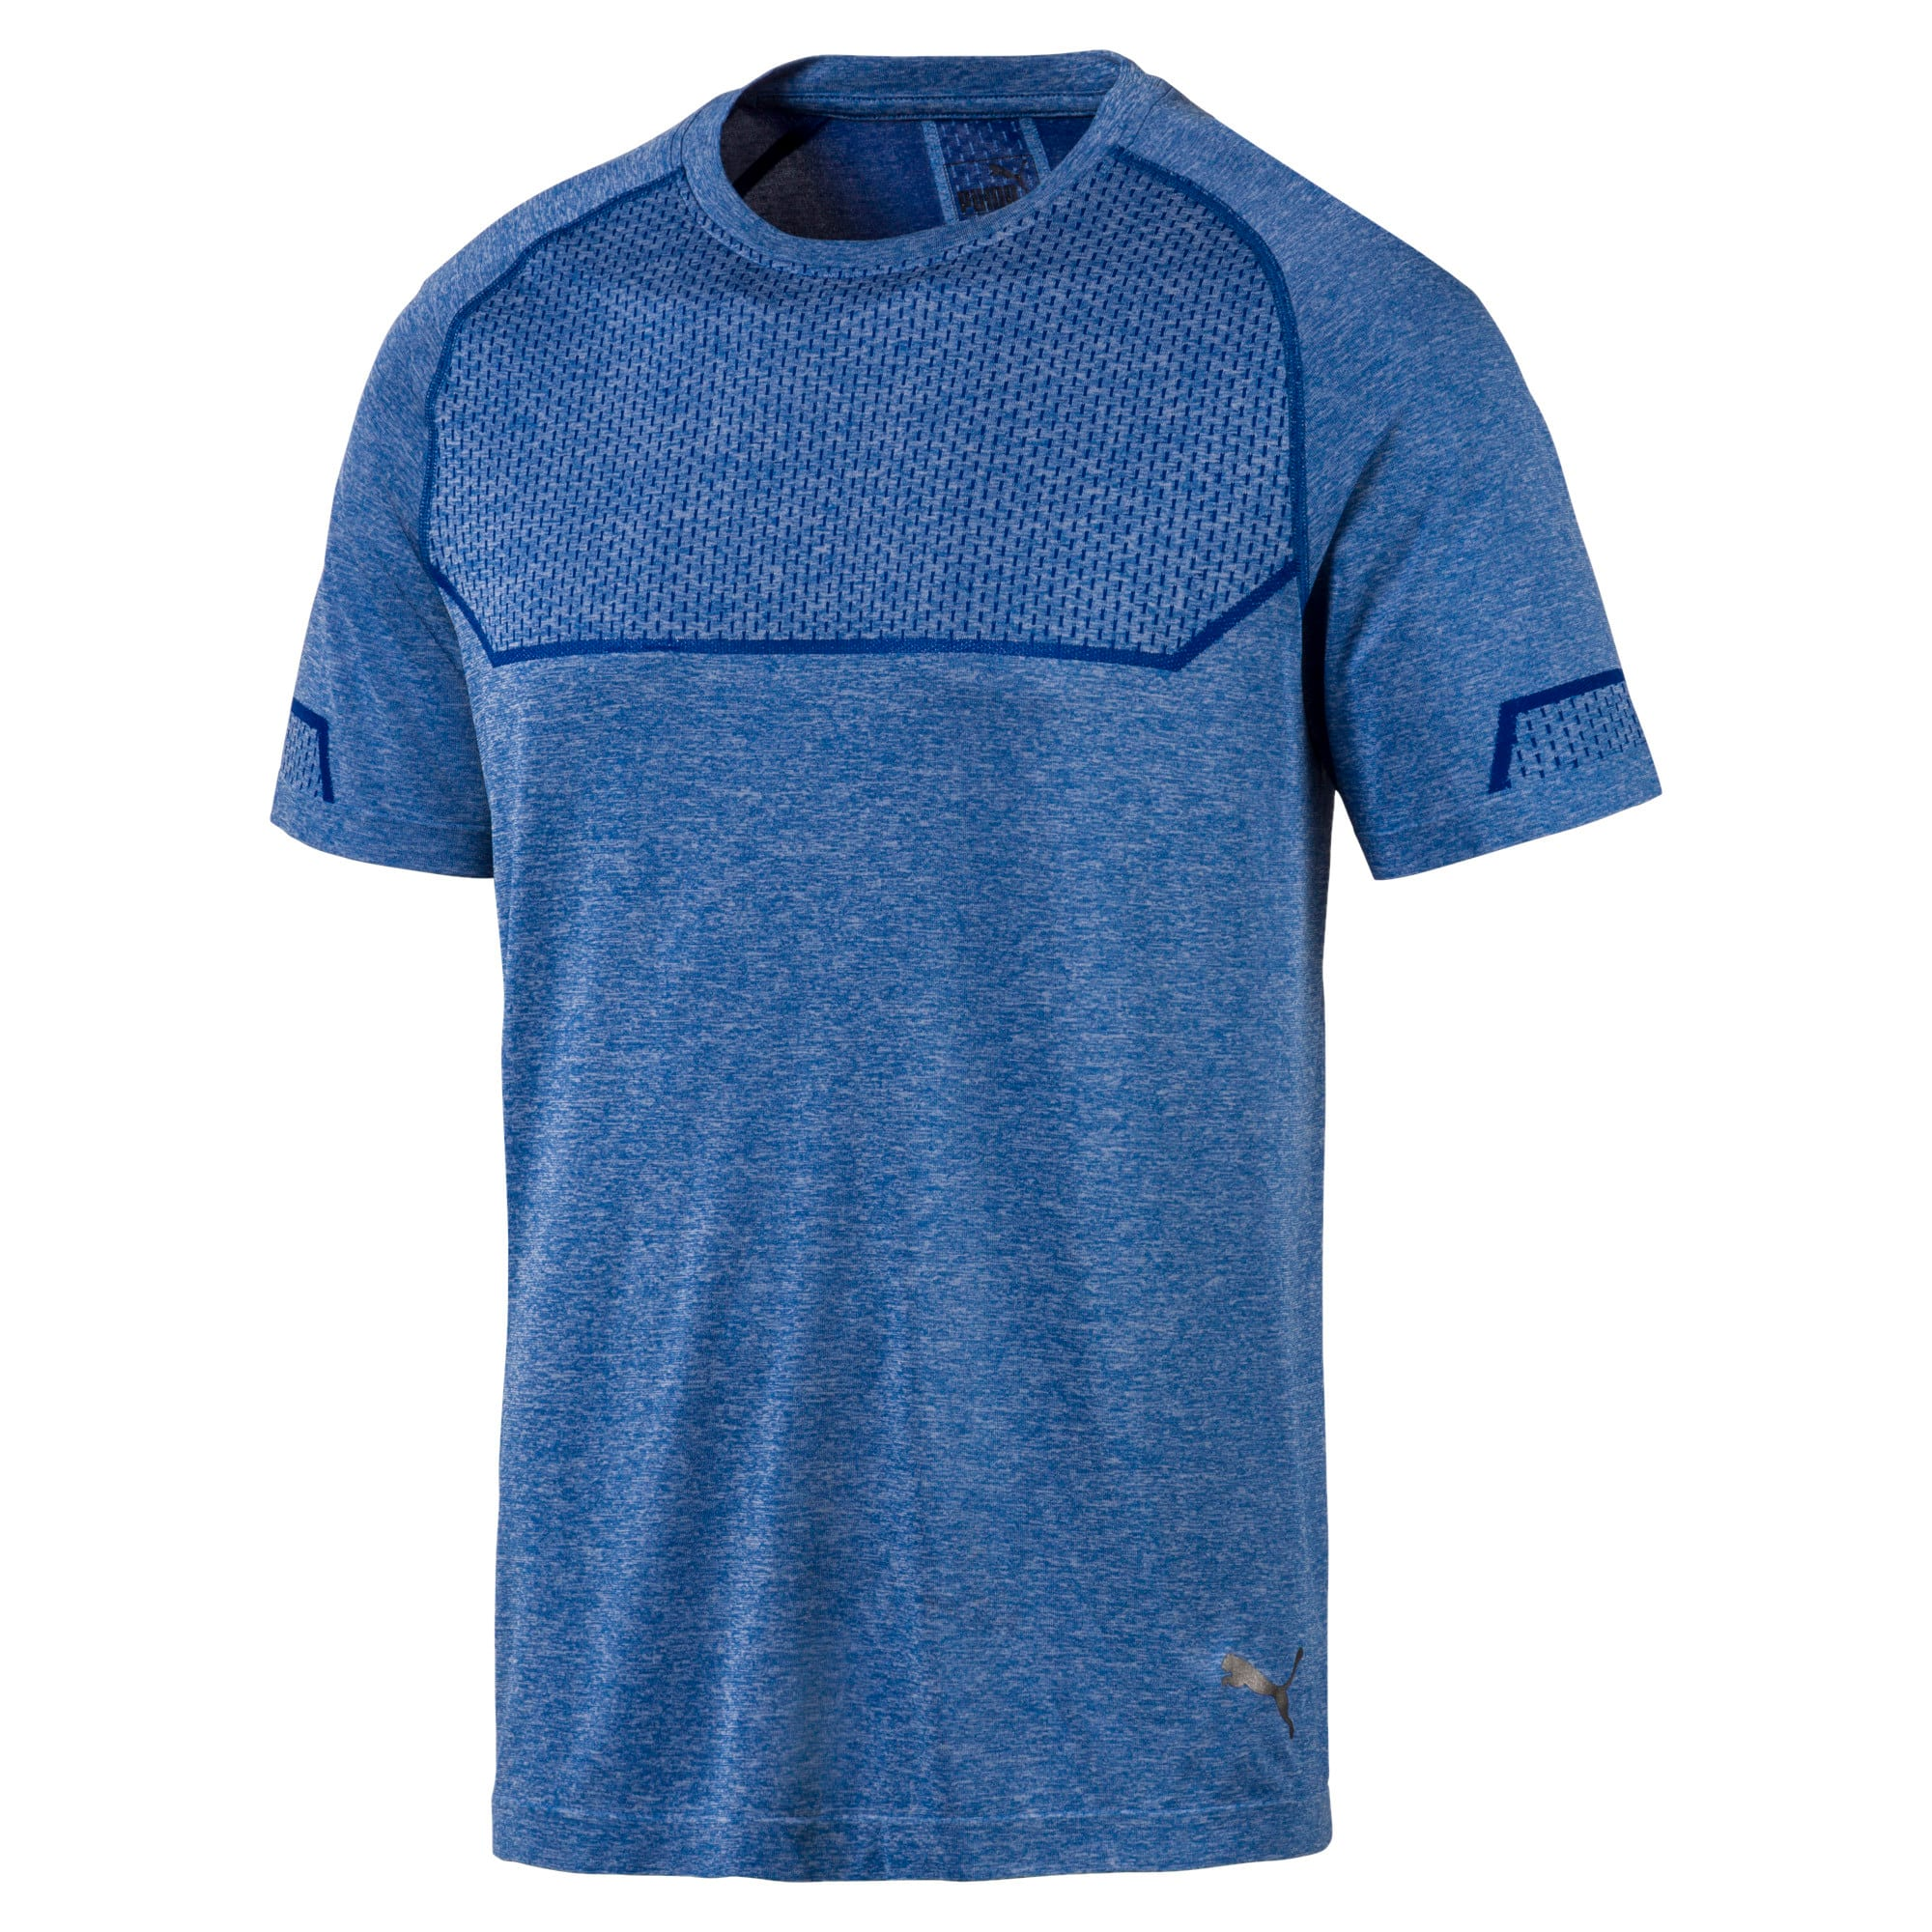 Thumbnail 4 of Naadloos Energy trainingsshirt voor heren, Galaxy Blue Heather, medium